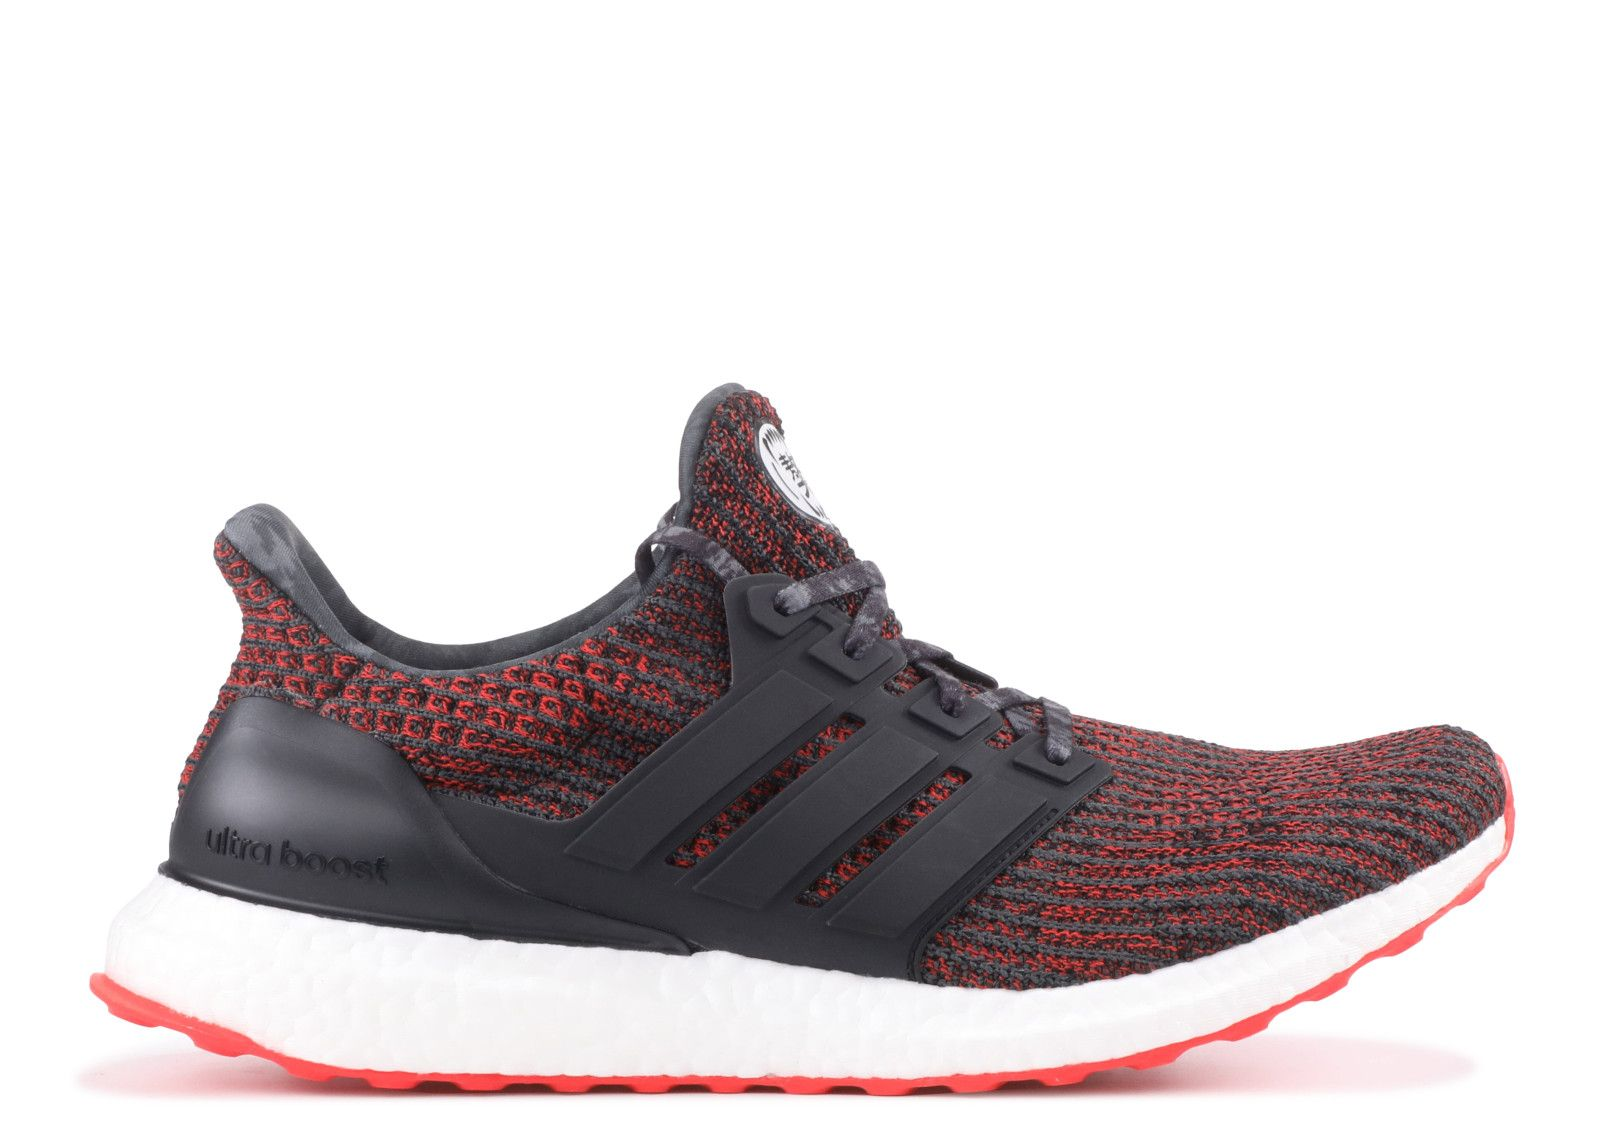 online store 8c5eb 937f3 2017-2018 New Arrival adidas Ultra Boost CNY Core Black Red Multi-Color  bb6173